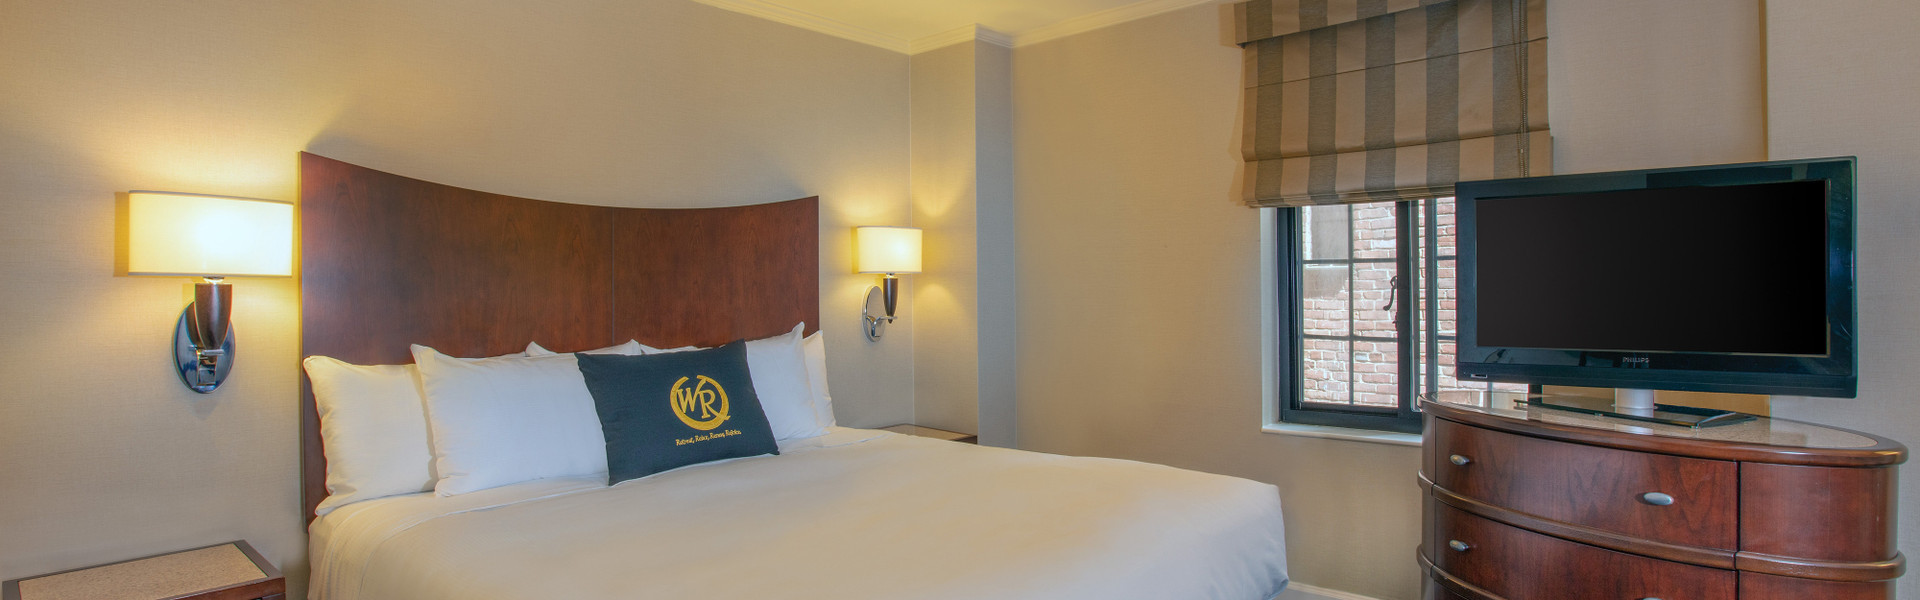 Signature King Suites Near Midtown East NYC   Westgate New York City